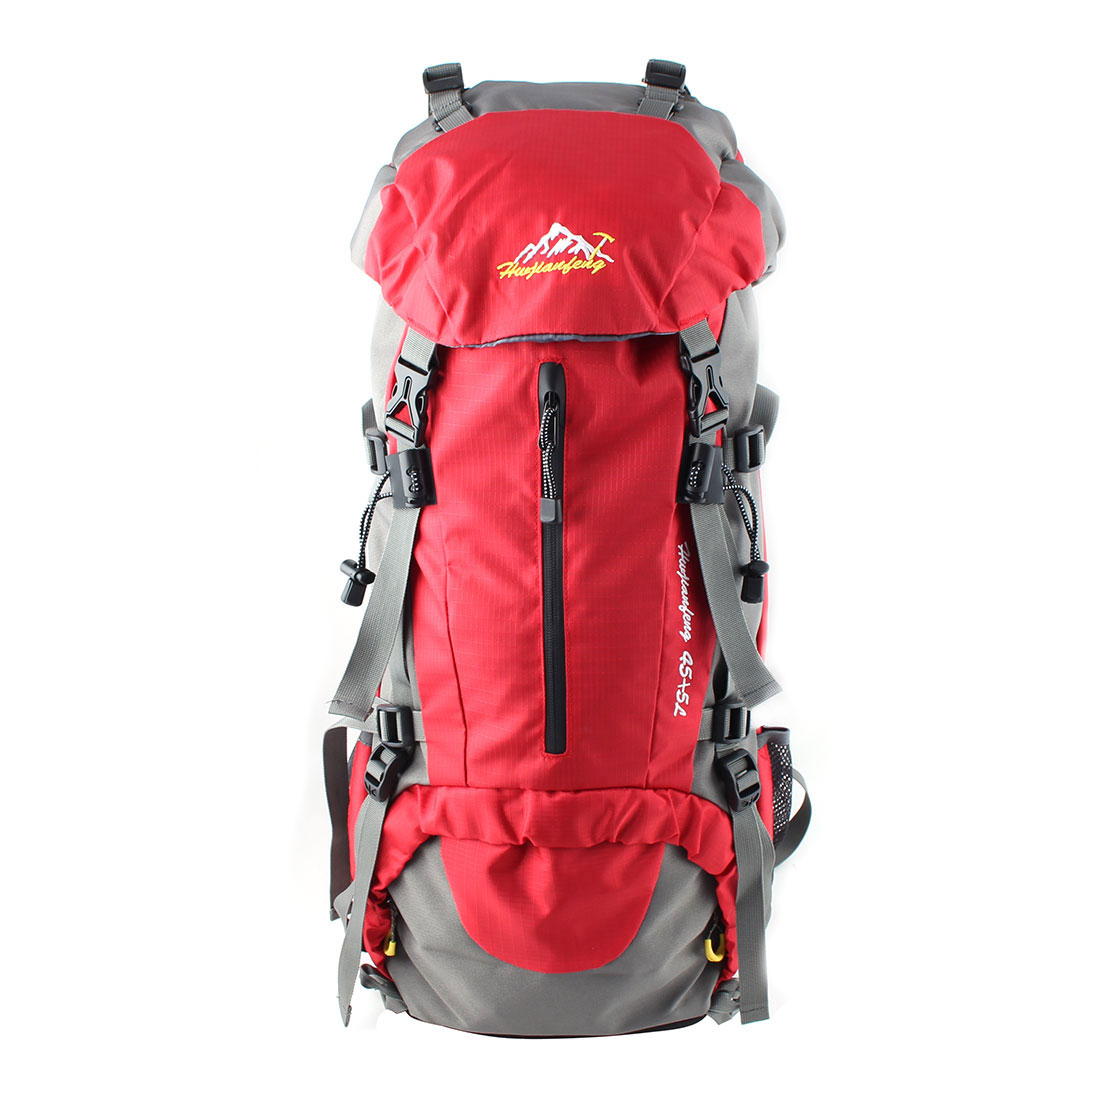 HWJIANFENG Authorized Outdoor Travel Trekking Climbing Mountaineering Pack Water Resistant Lightweight Sport Bag Hiking Backpack Daypack Red 50L